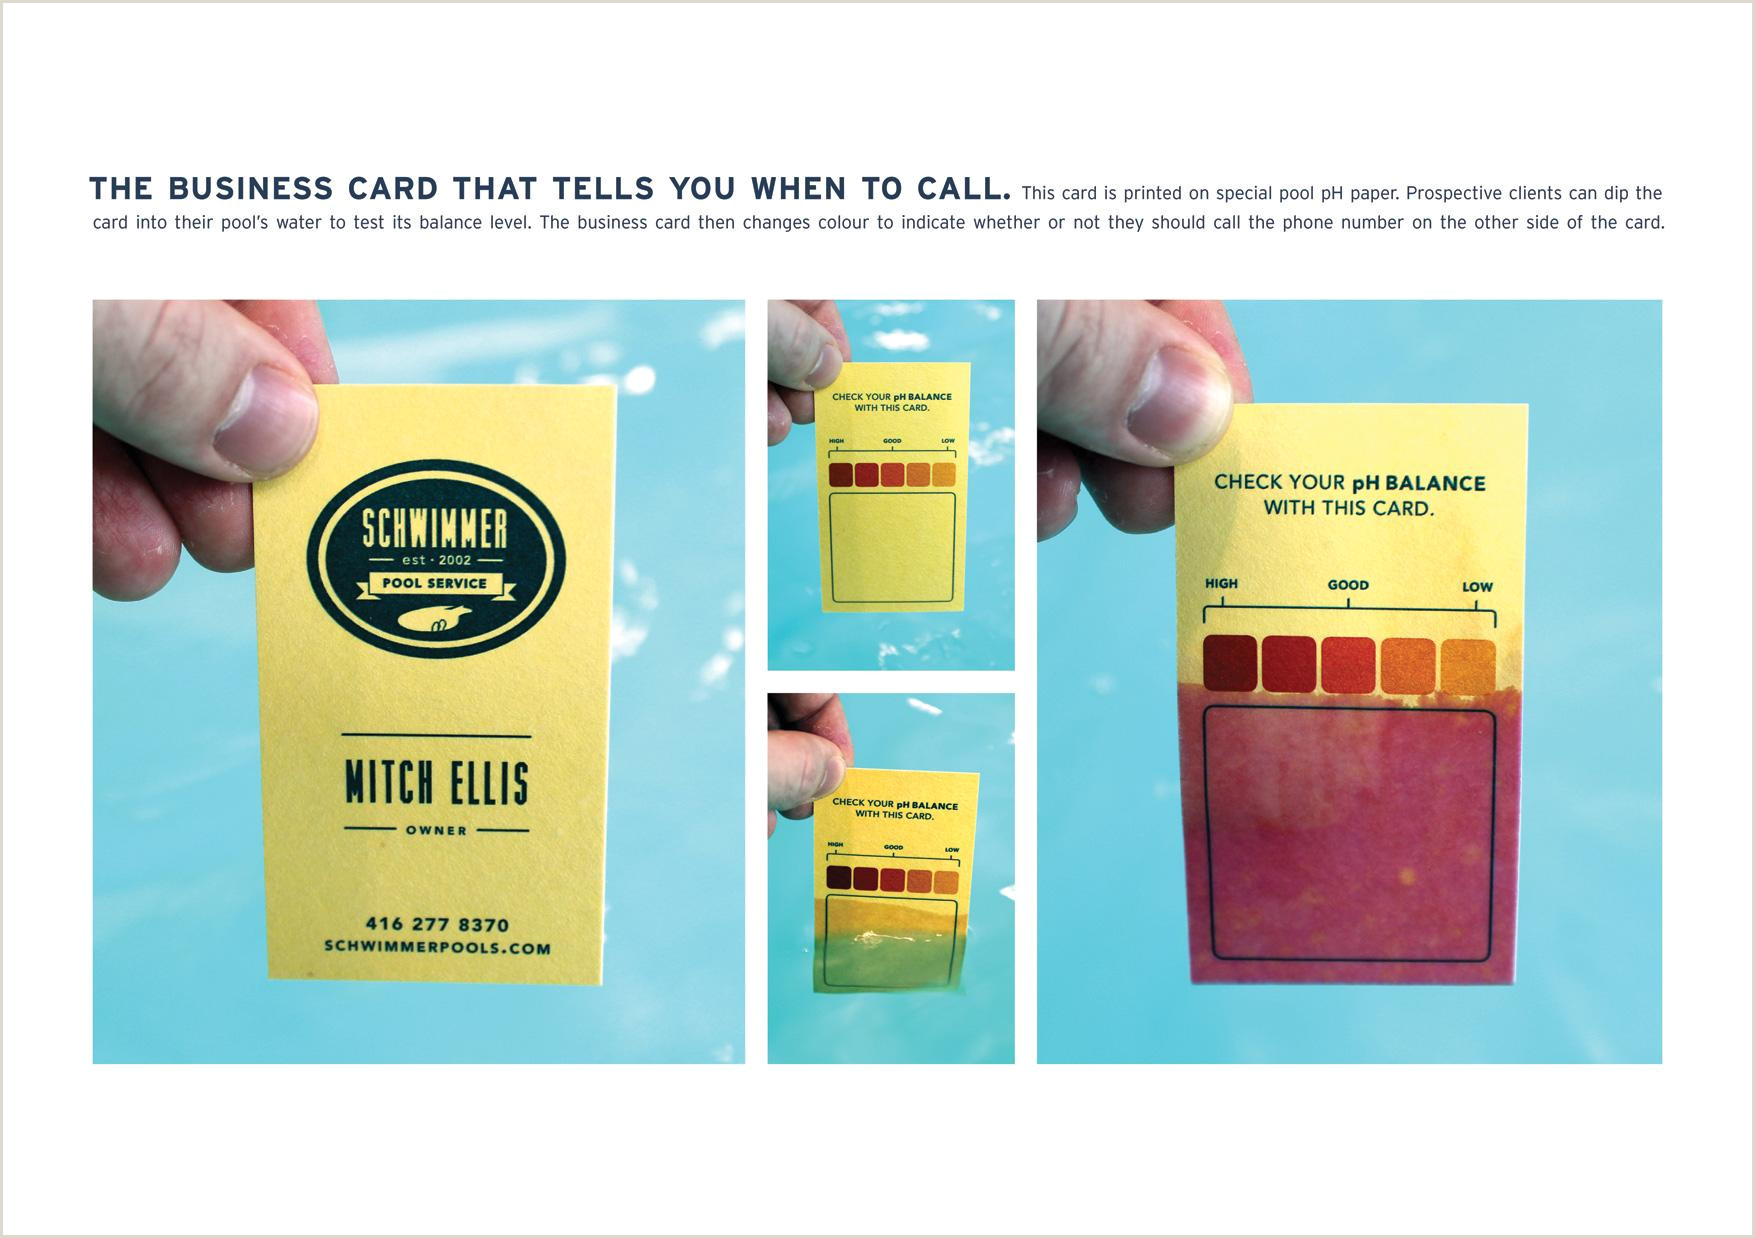 The Best Business Cards Designs 30 Business Card Design Ideas That Will Get Everyone Talking